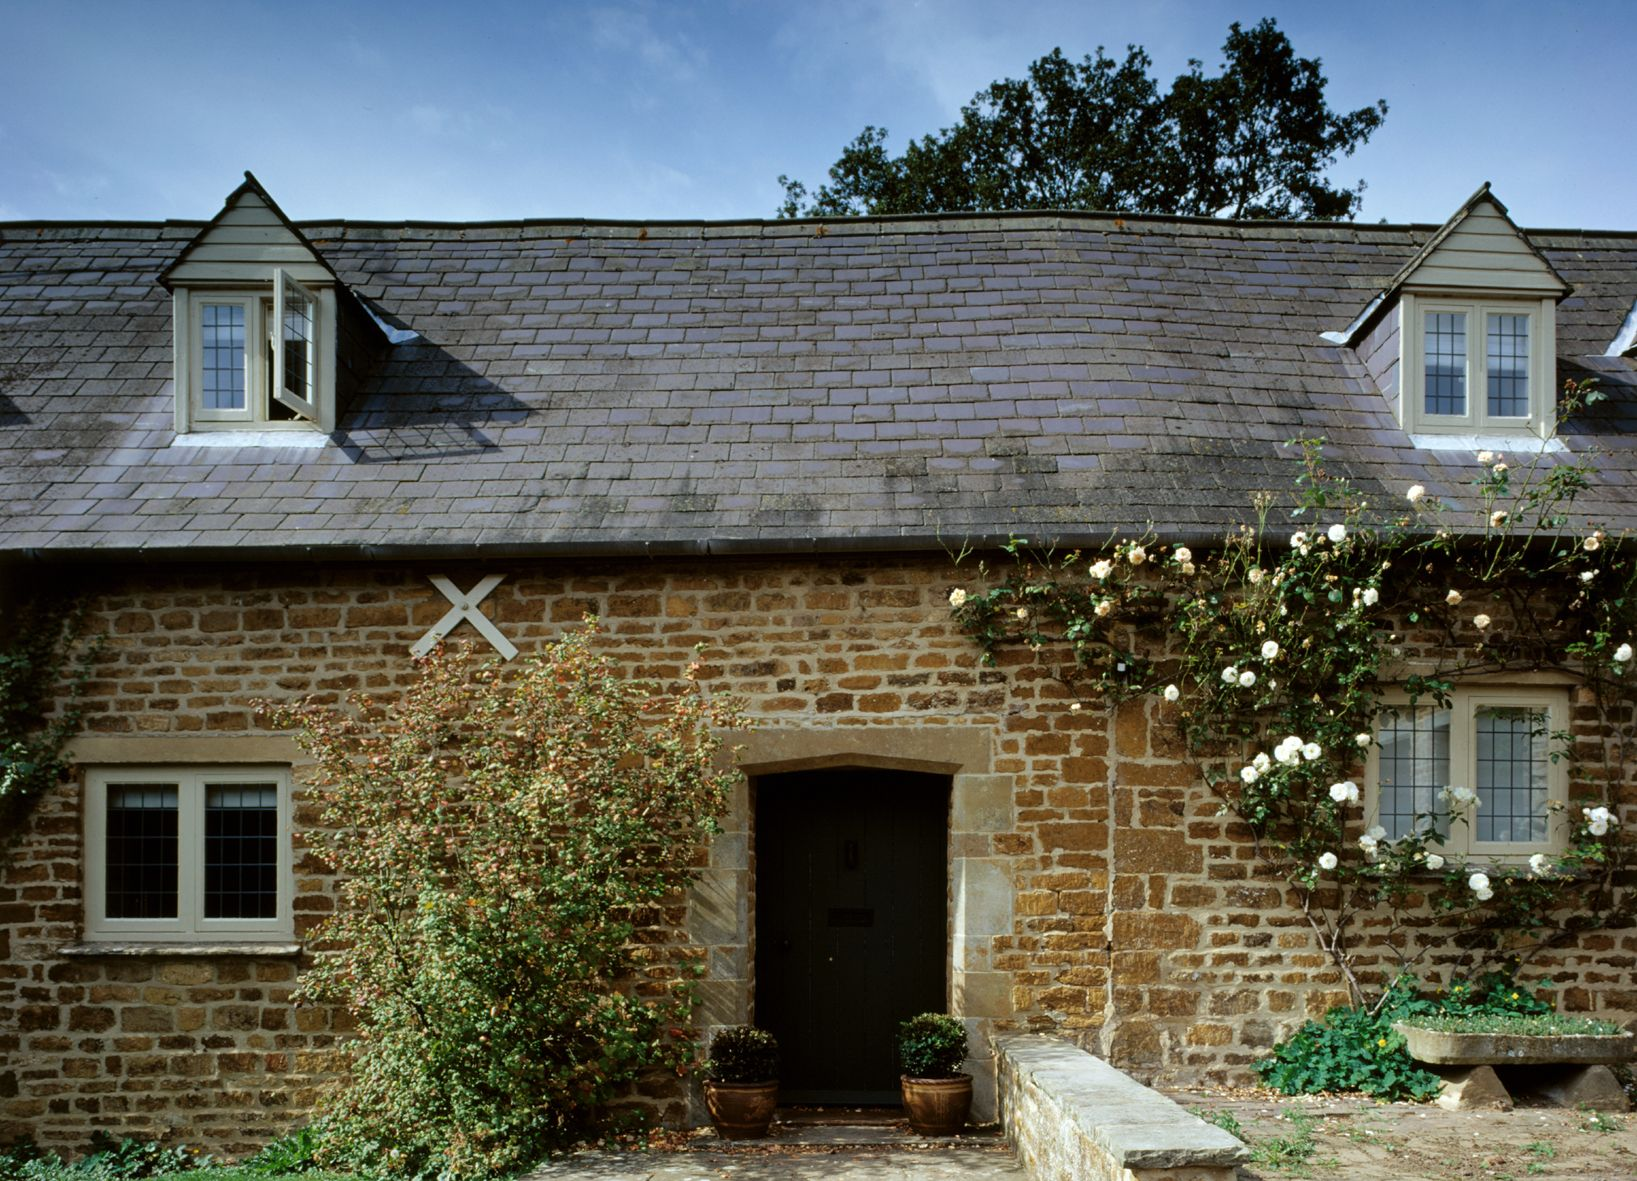 Cosy country cottage front exterior http://www.architect-yourhome.com/